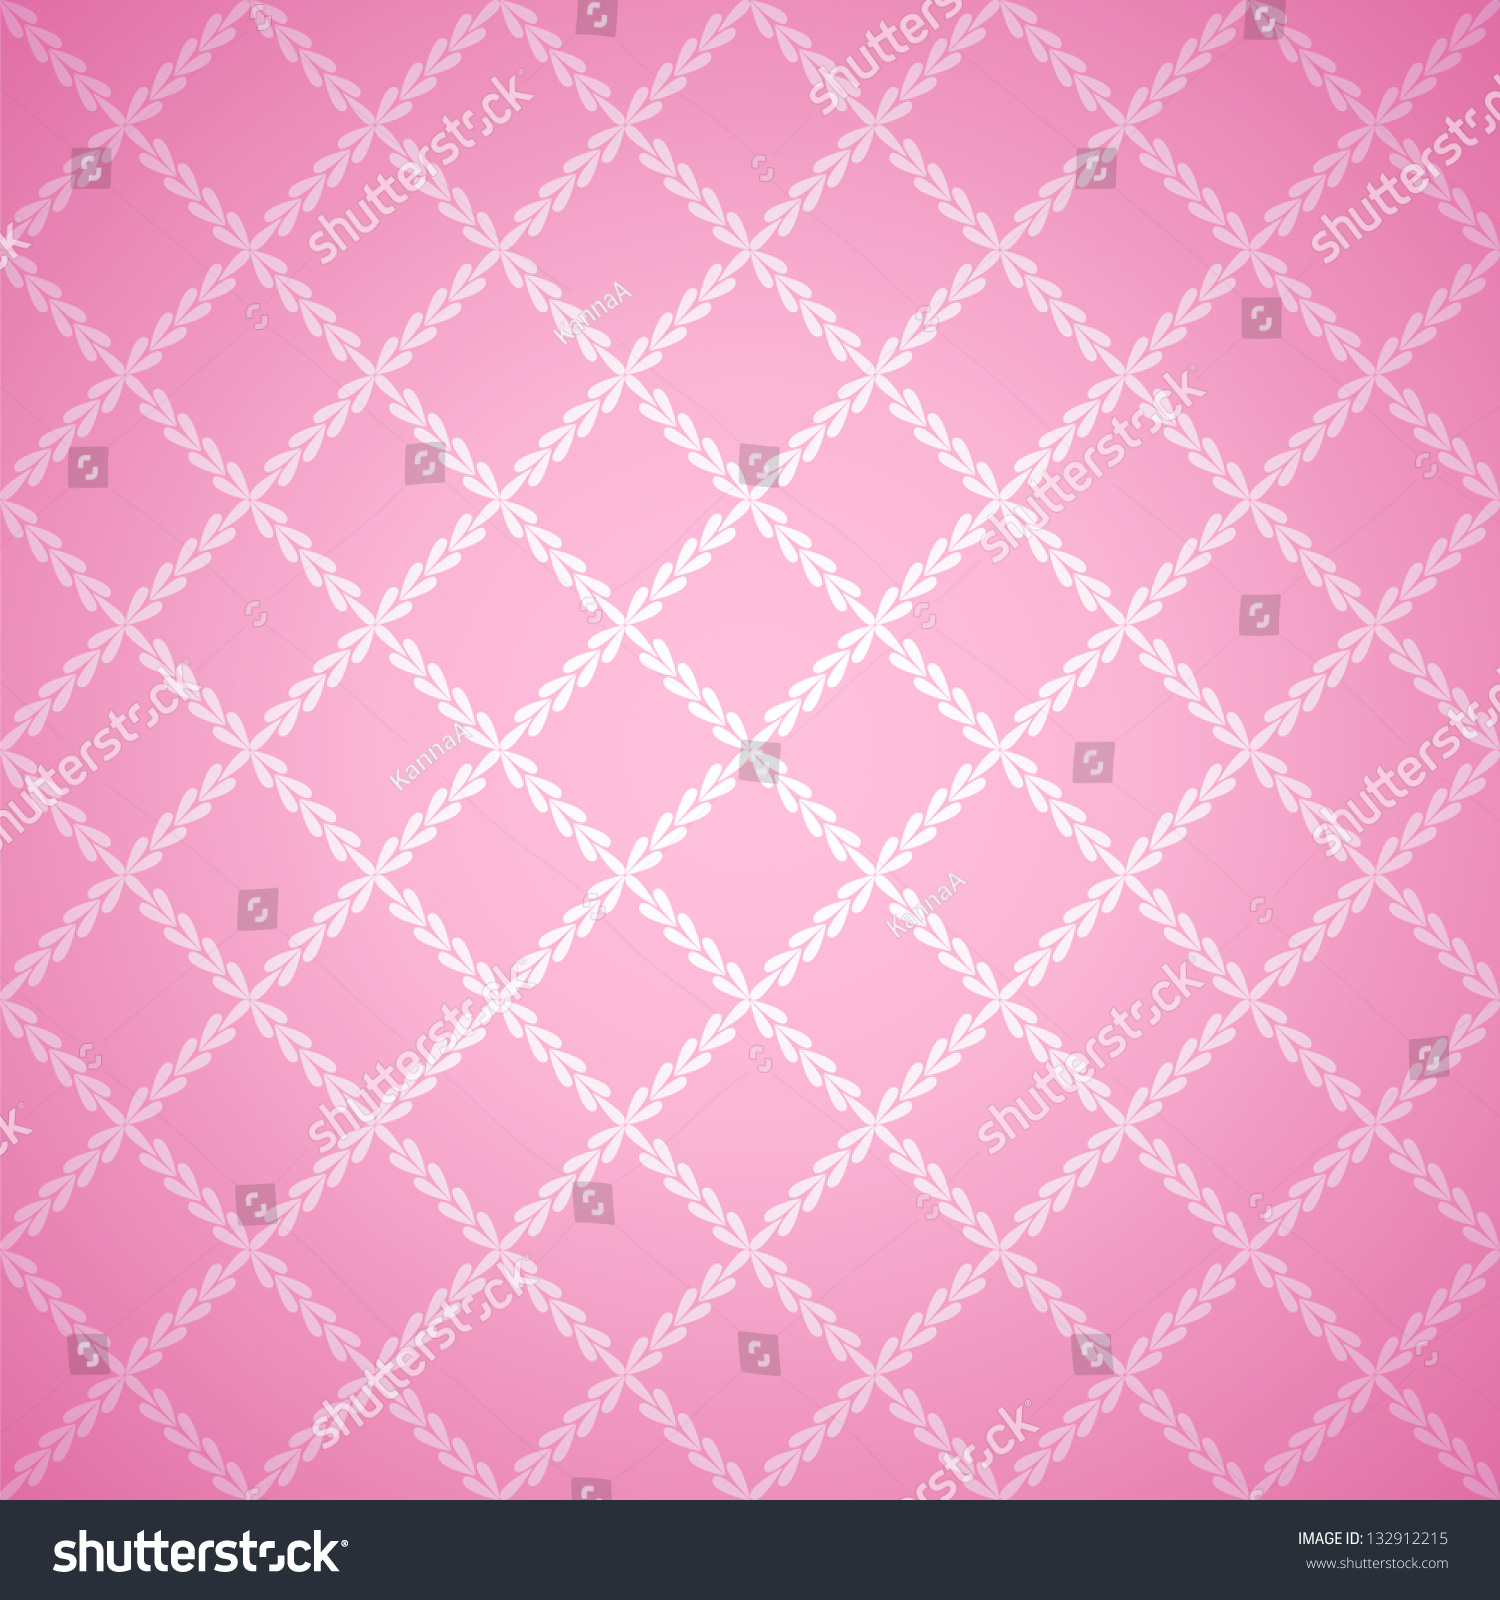 Fabric Book Cover Texture : Pink cloth texture background vector illustration for